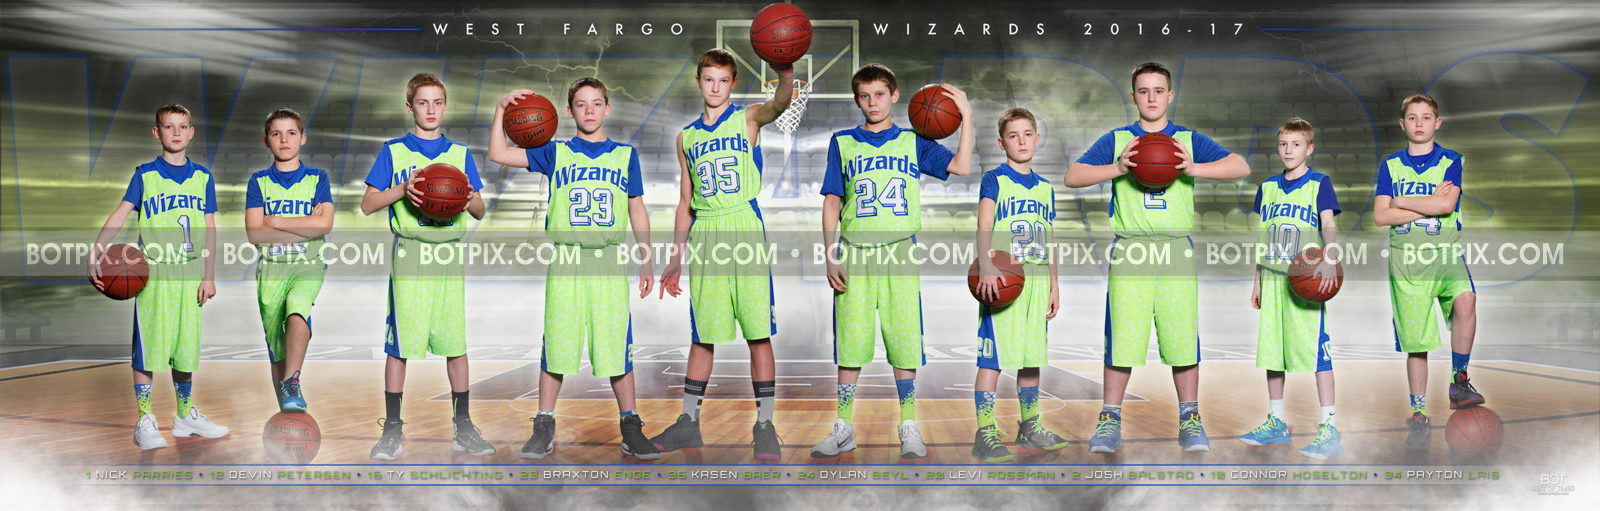 Your Athlete s Details.   required fields. Name  . 1x West Fargo Wizards  Basketball 2017 c6fe098a2